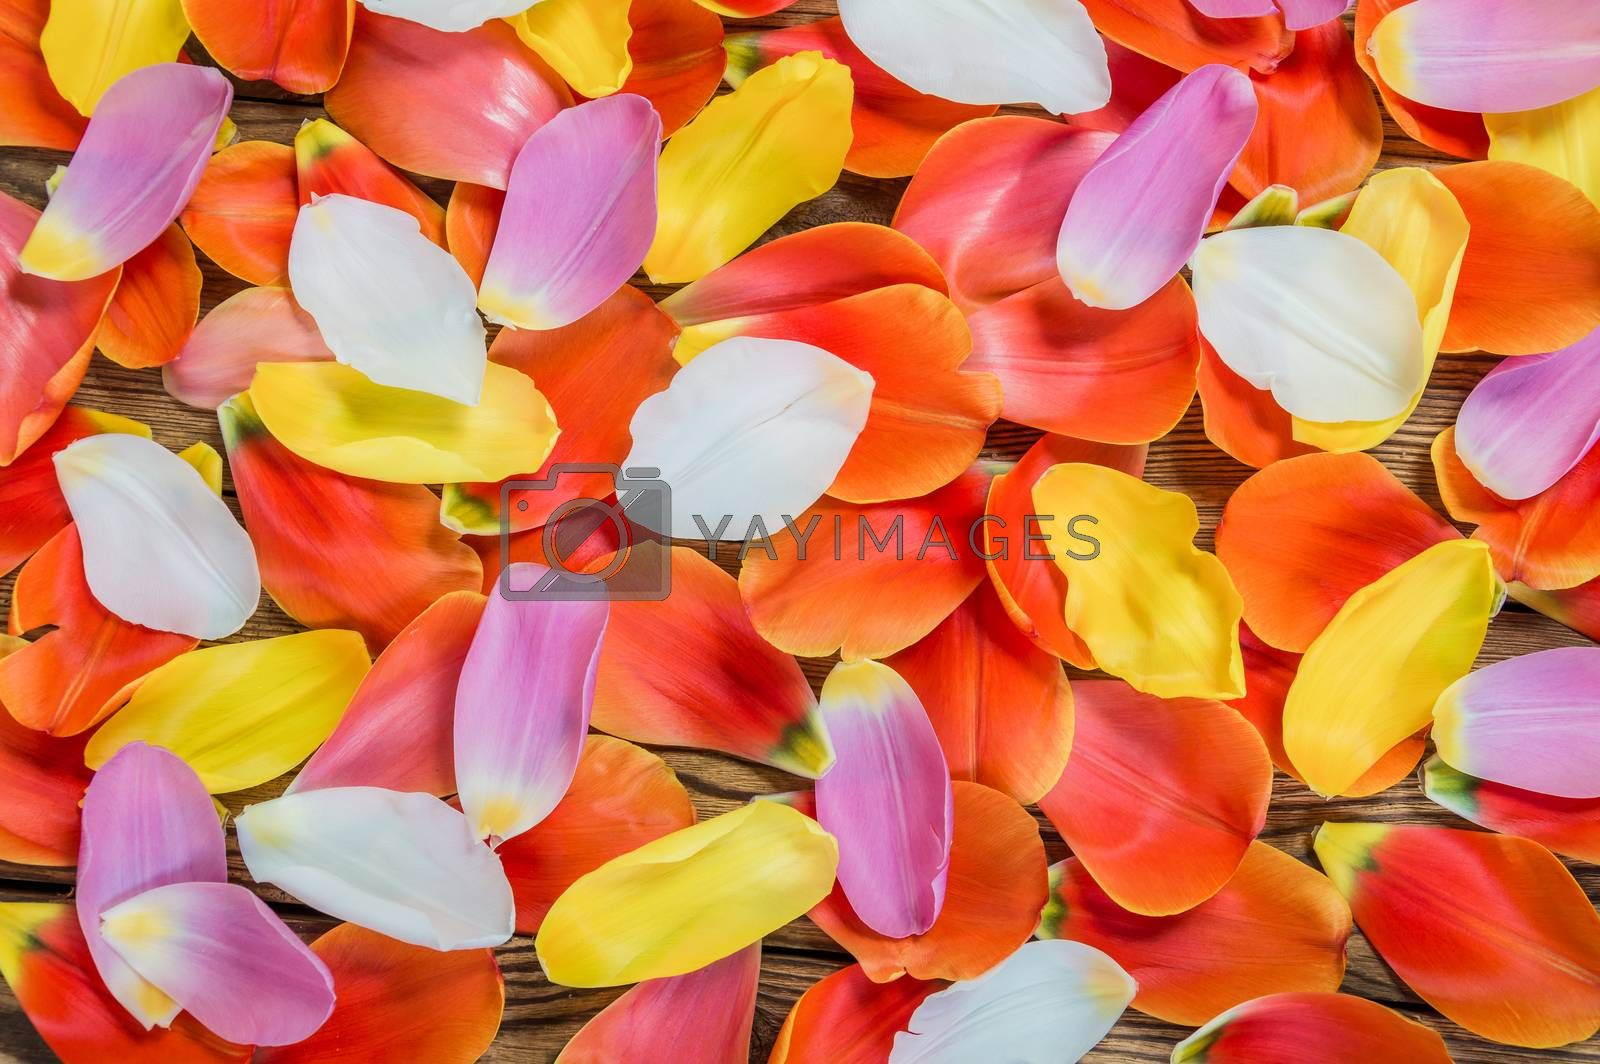 Flower petals of a tulip on rustic table